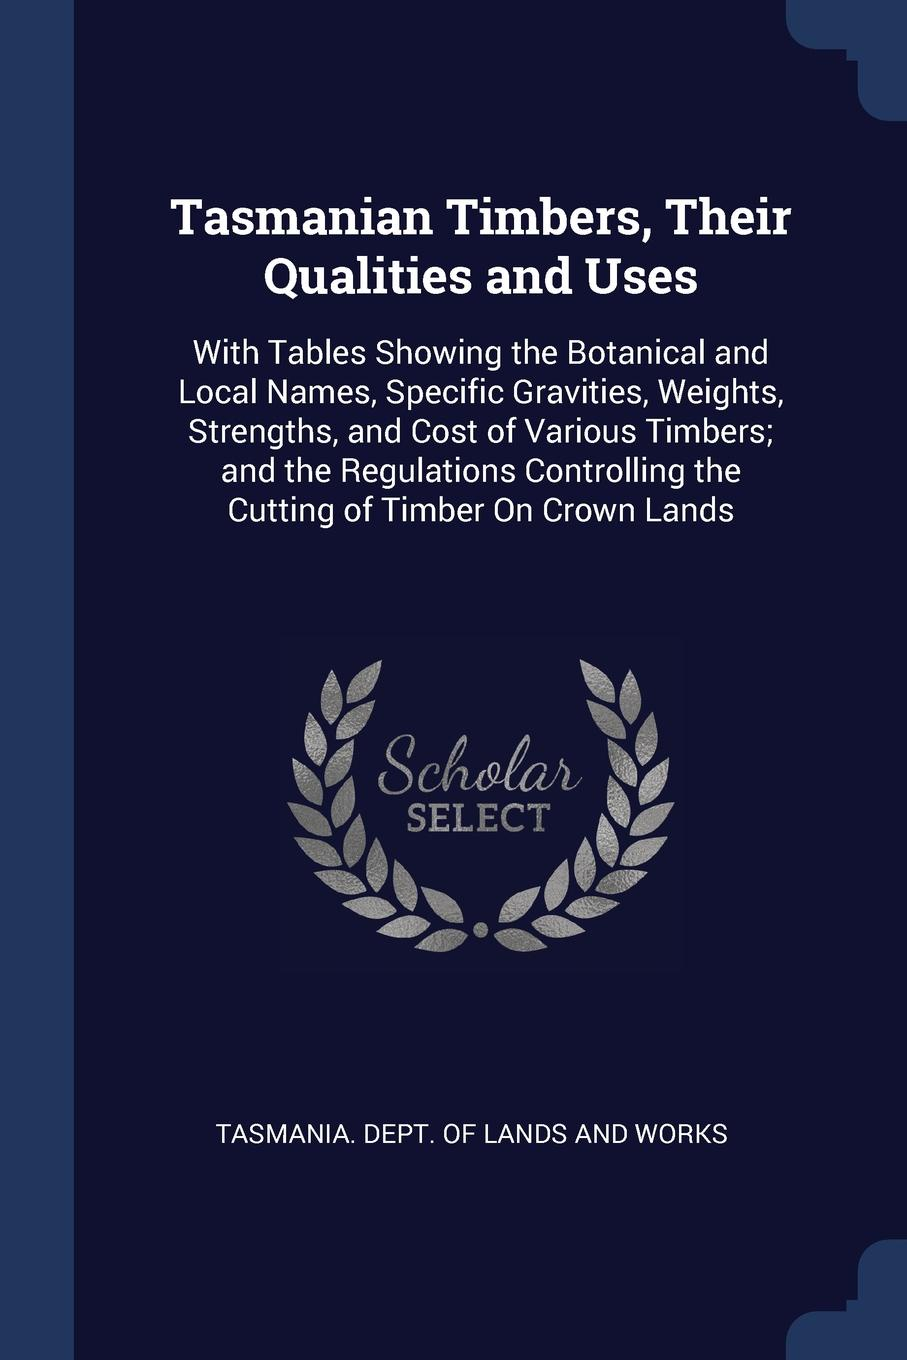 Tasmanian Timbers, Their Qualities and Uses. With Tables Showing the Botanical and Local Names, Specific Gravities, Weights, Strengths, and Cost of Various Timbers; and the Regulations Controlling the Cutting of Timber On Crown Lands.